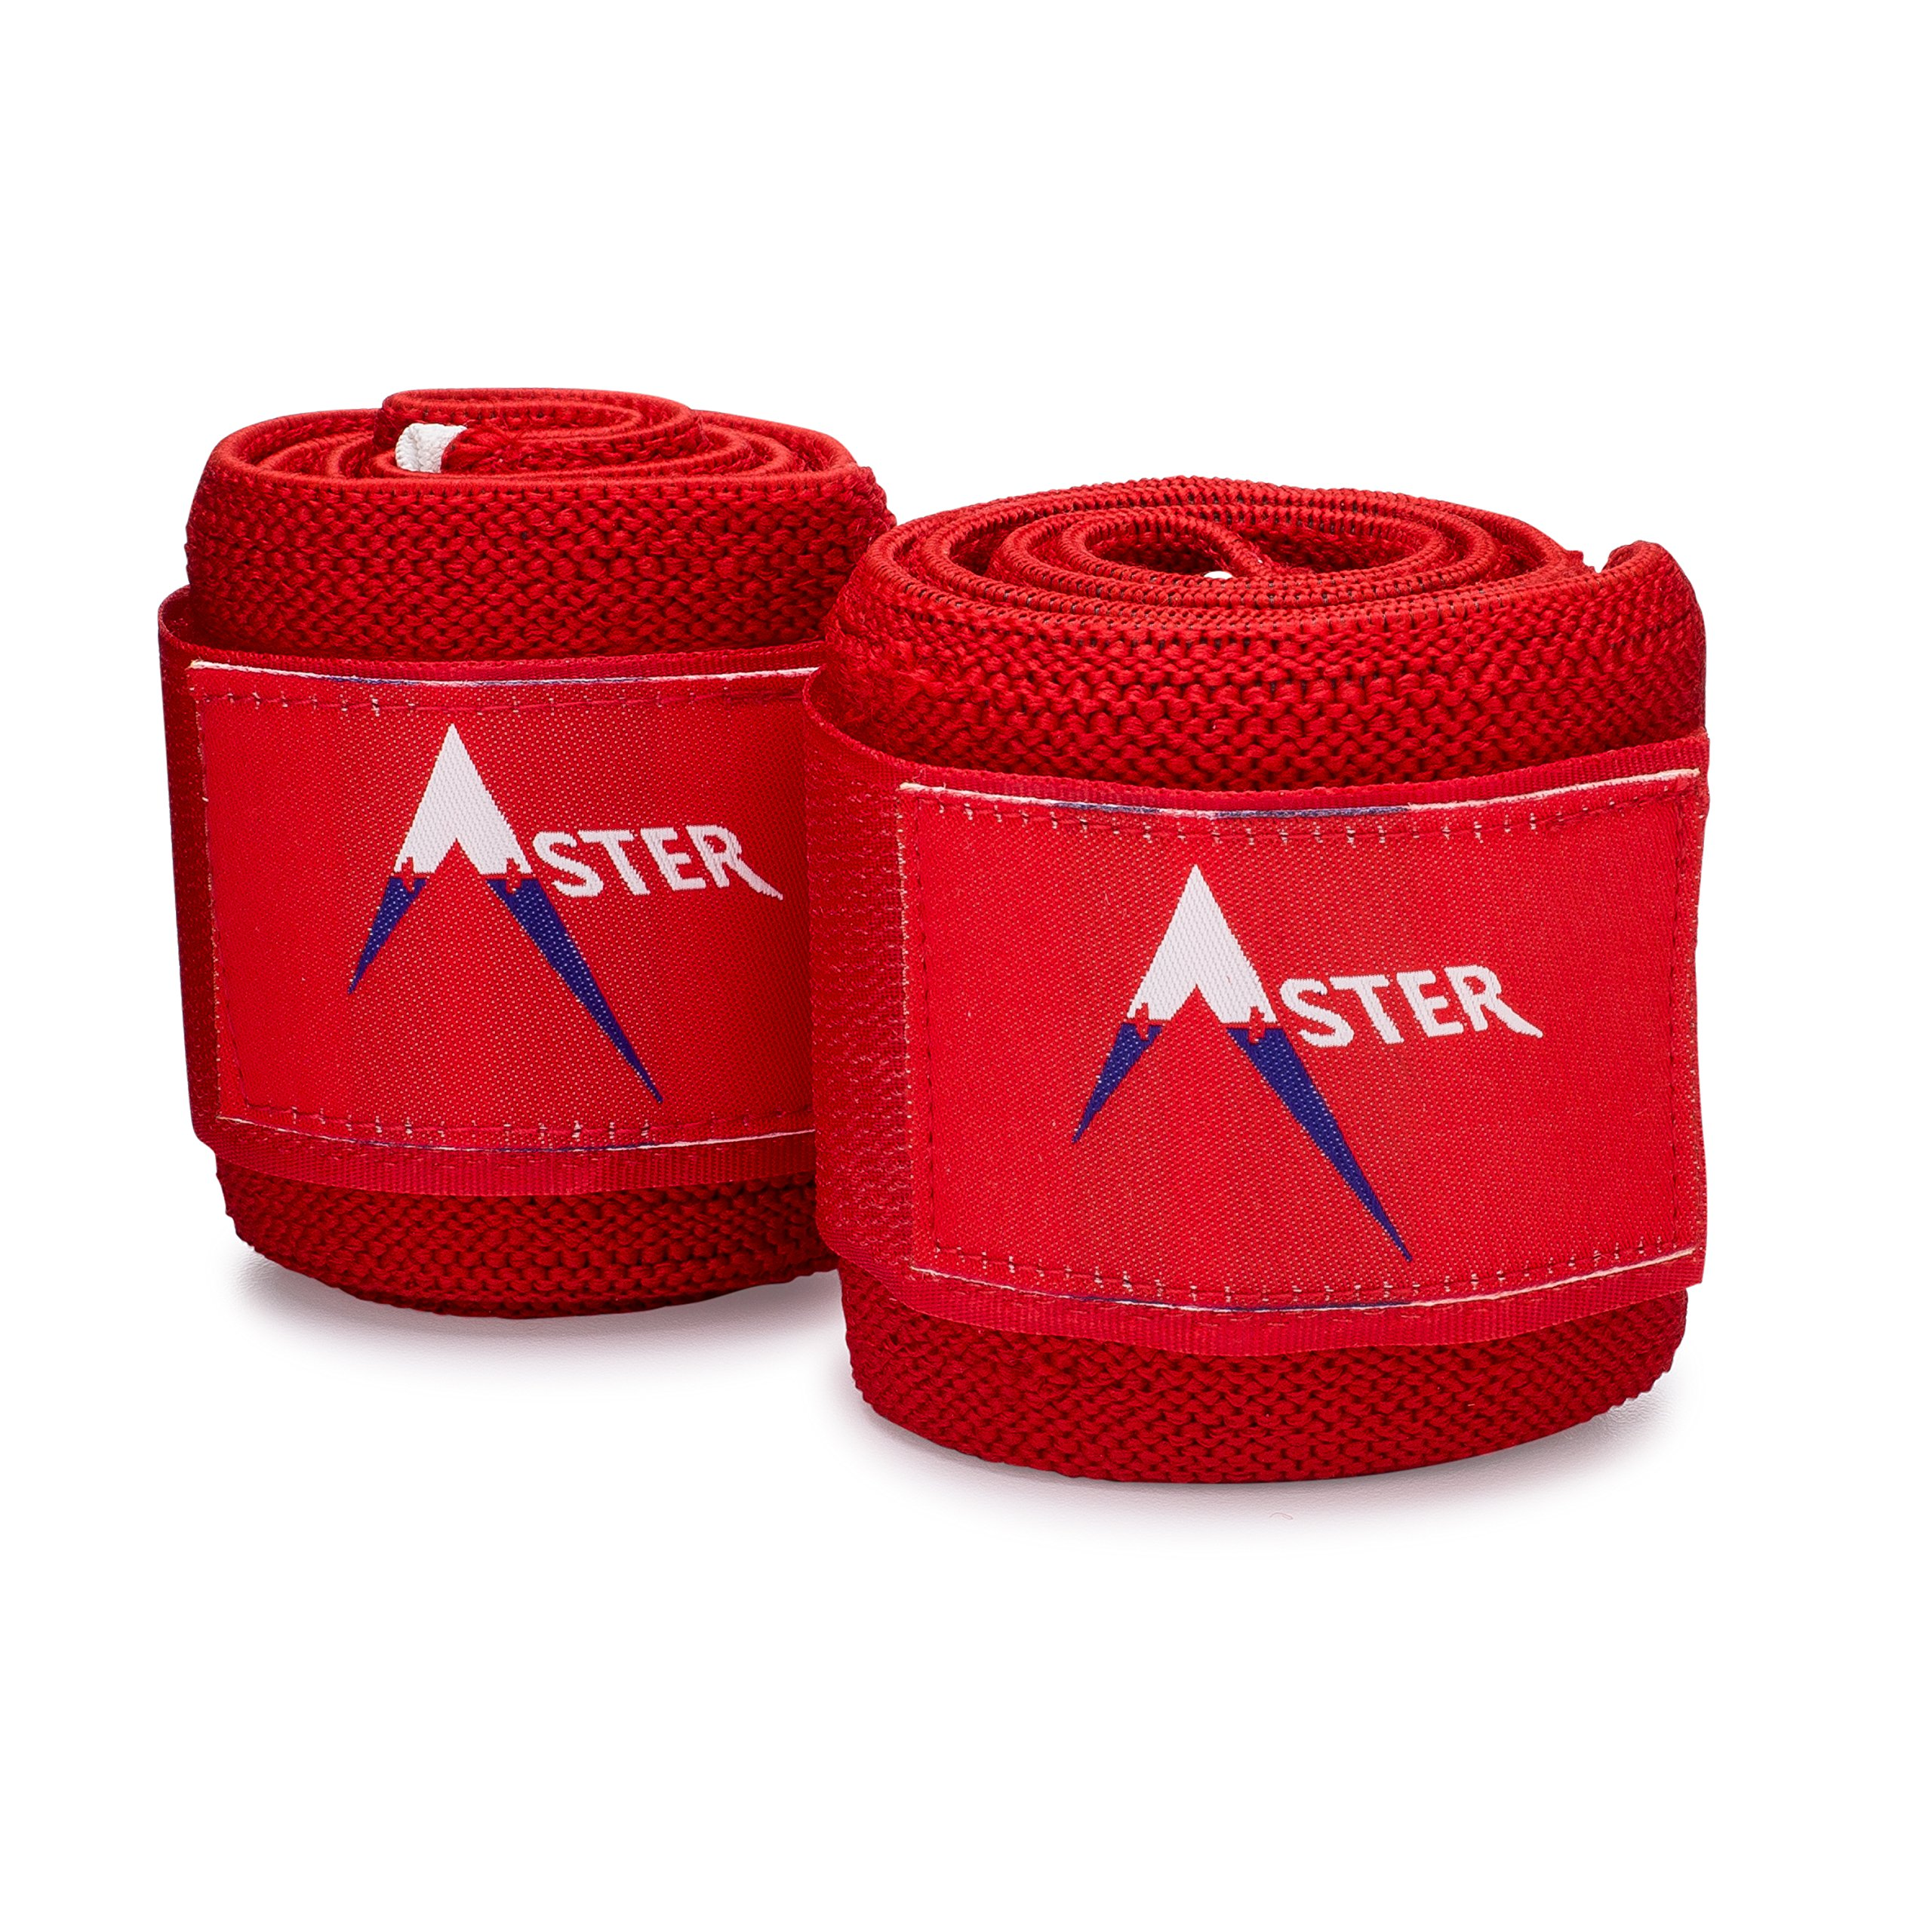 Aster Wrist Wraps - (34' Premium Heavy Duty) Wrist Wraps With Patented Palm Loop Design - For Powerlifting & Strength Training - USPA & IPL Powerlifting Federation Approved Product